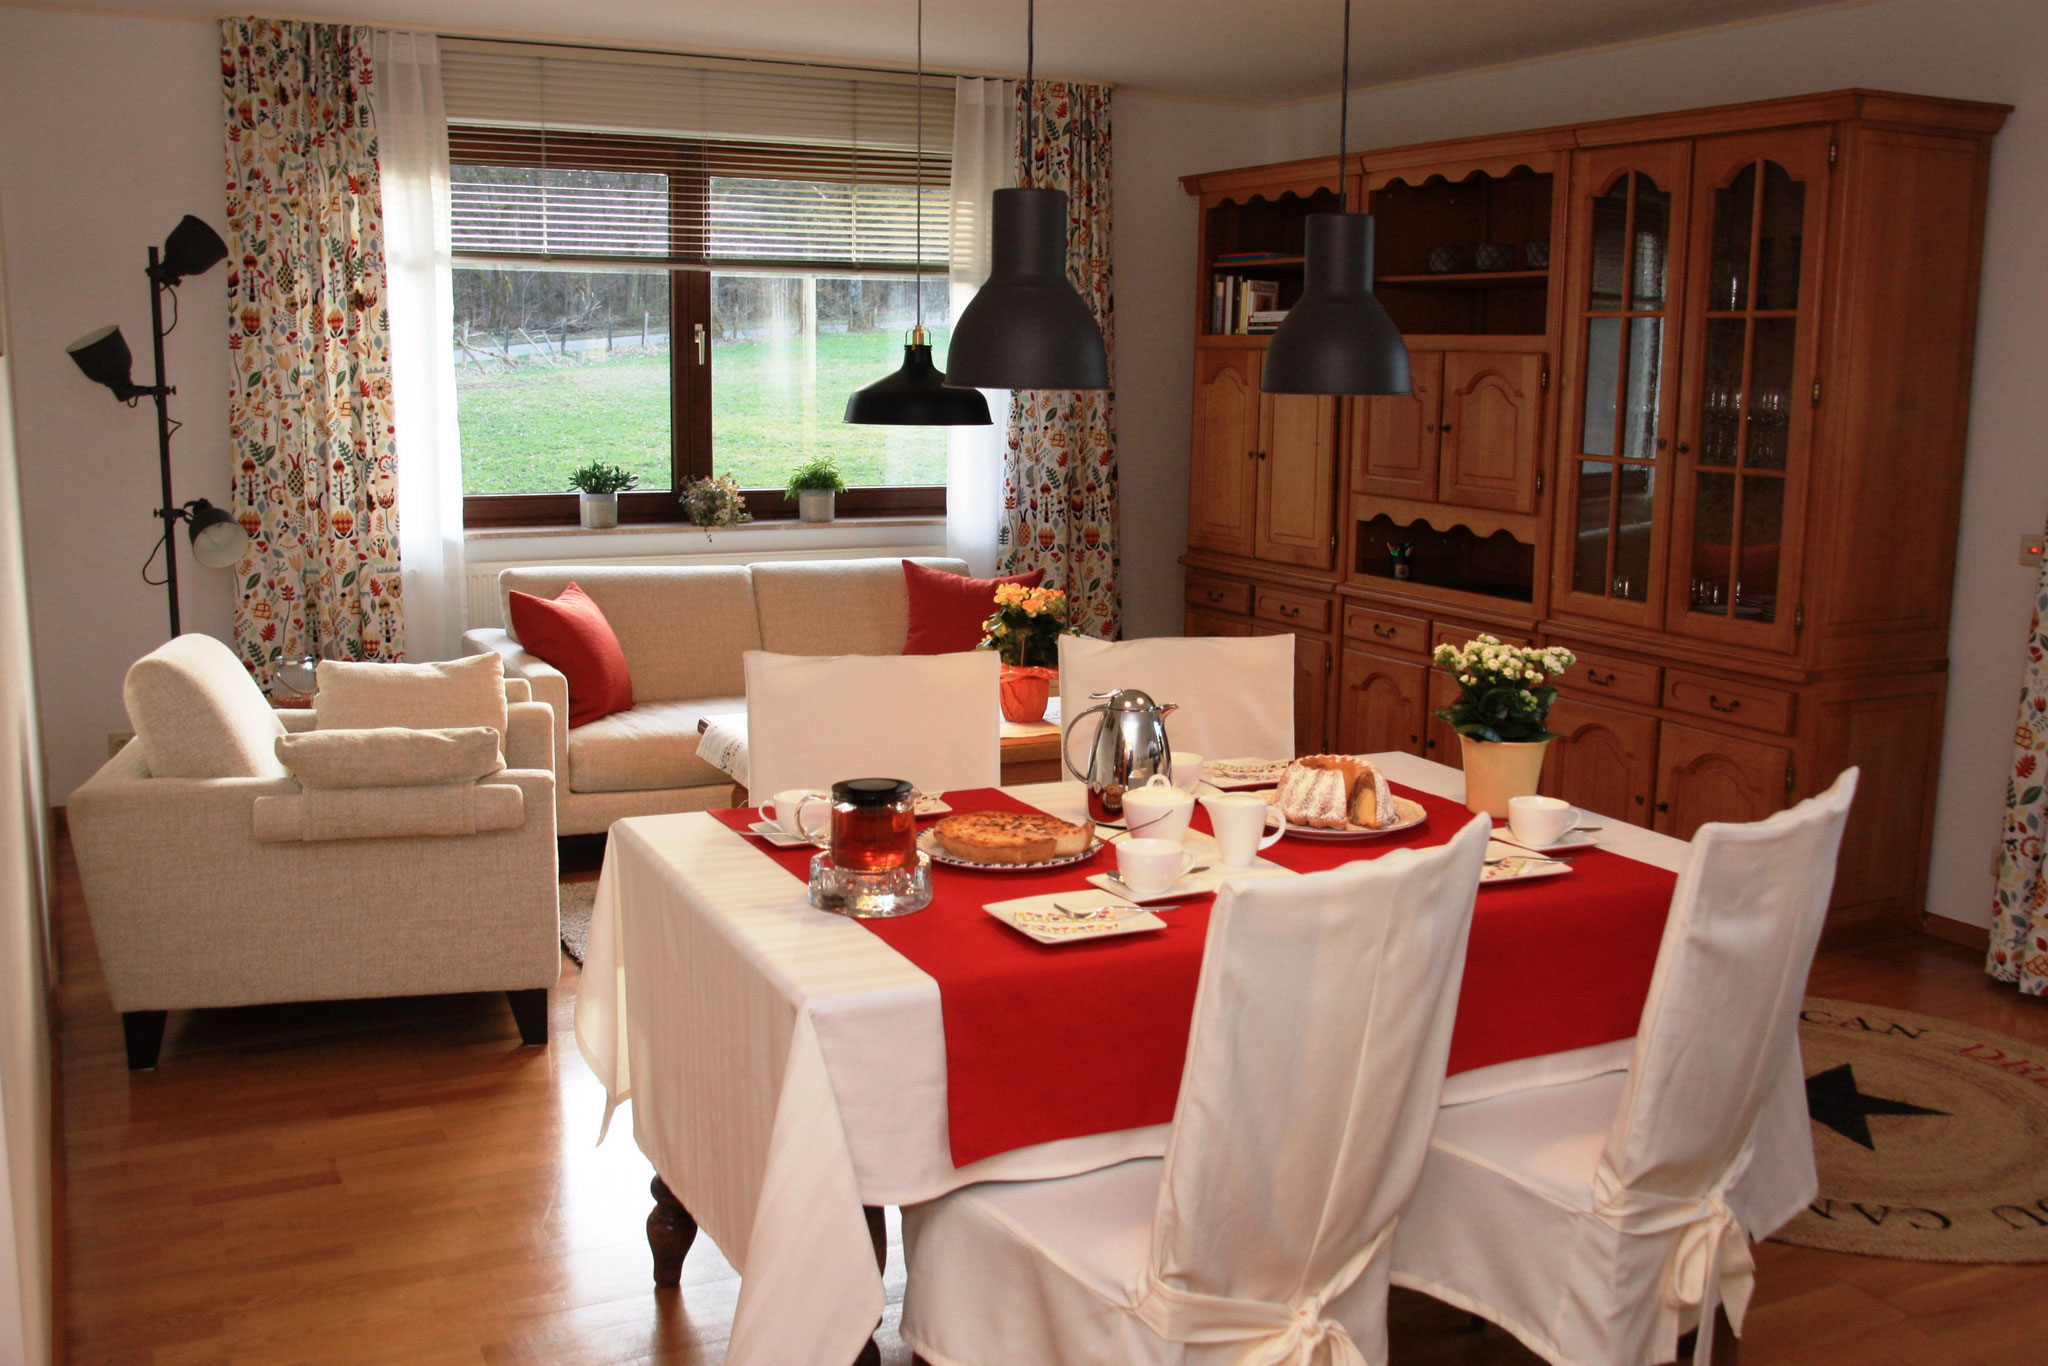 Das geräumige Wohnzimmer     De grote woonkamer     The large living room